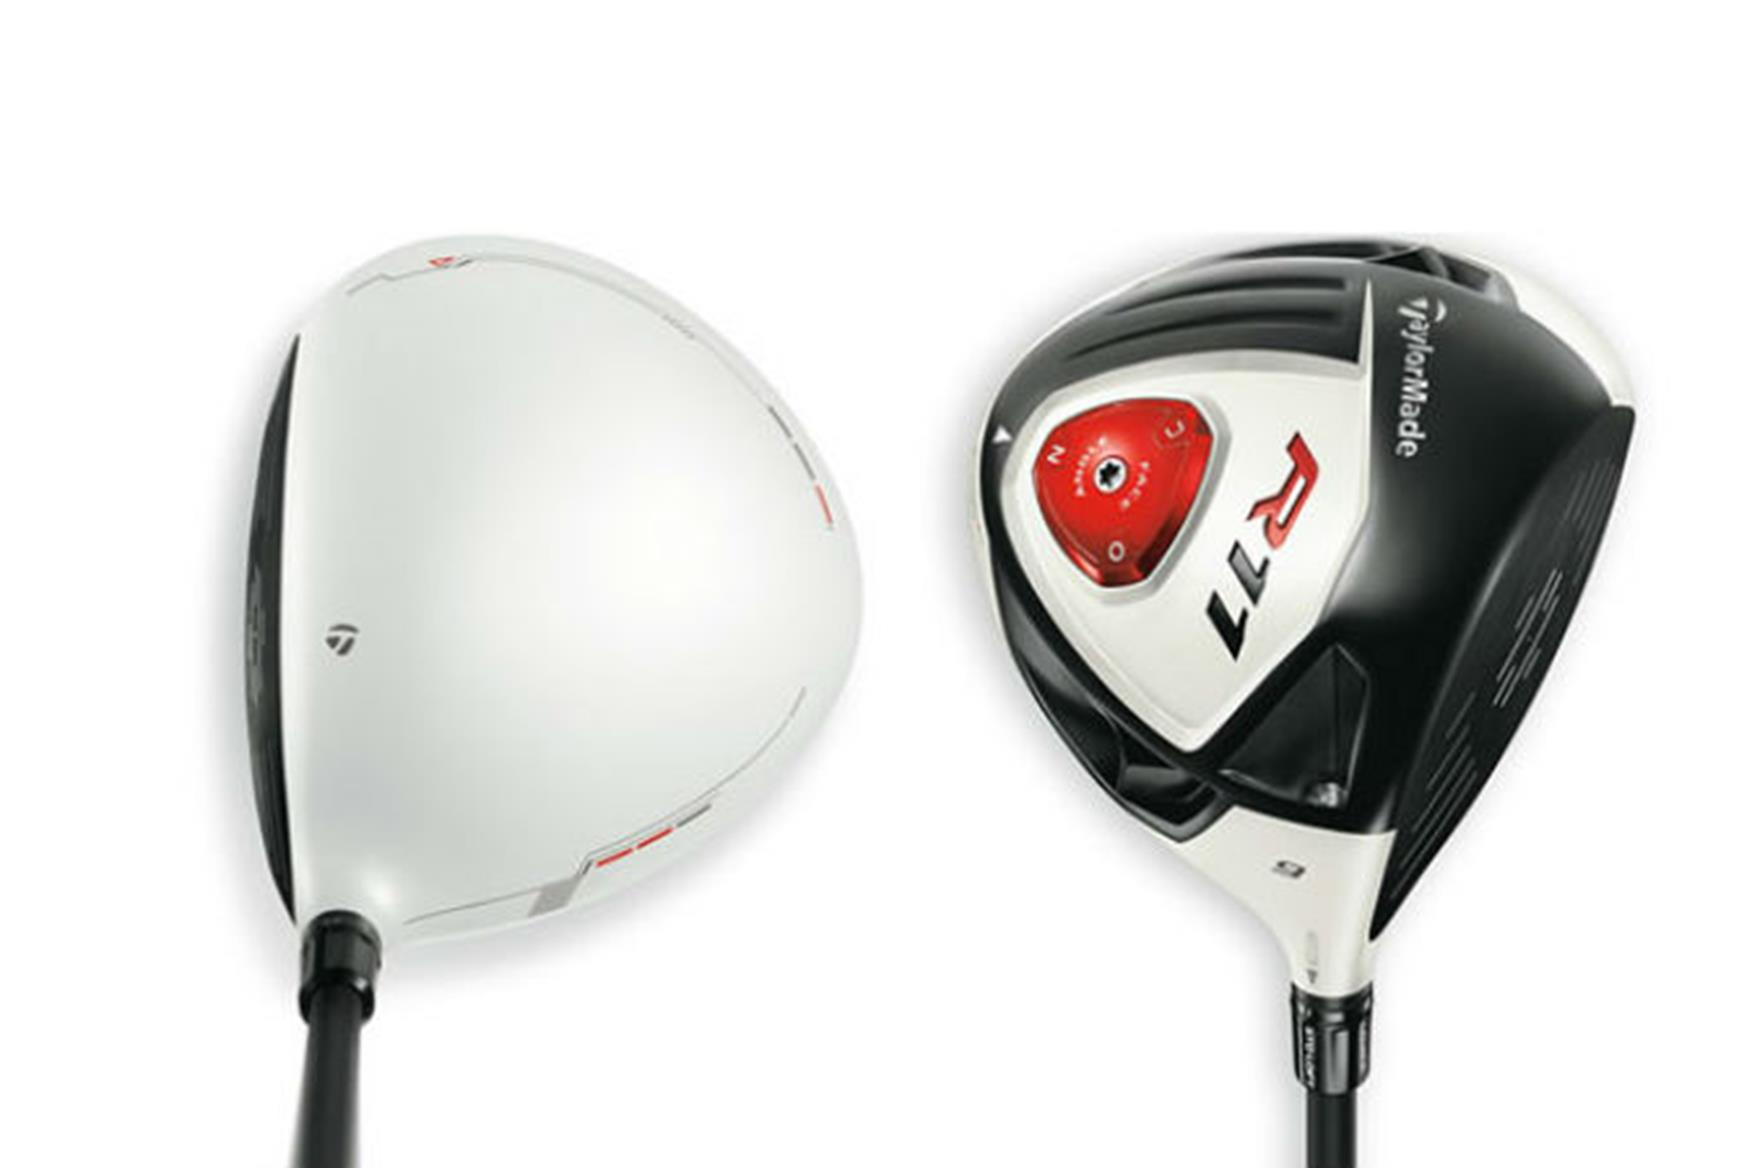 TAYLORMADE R11 WOMENS DRIVERS